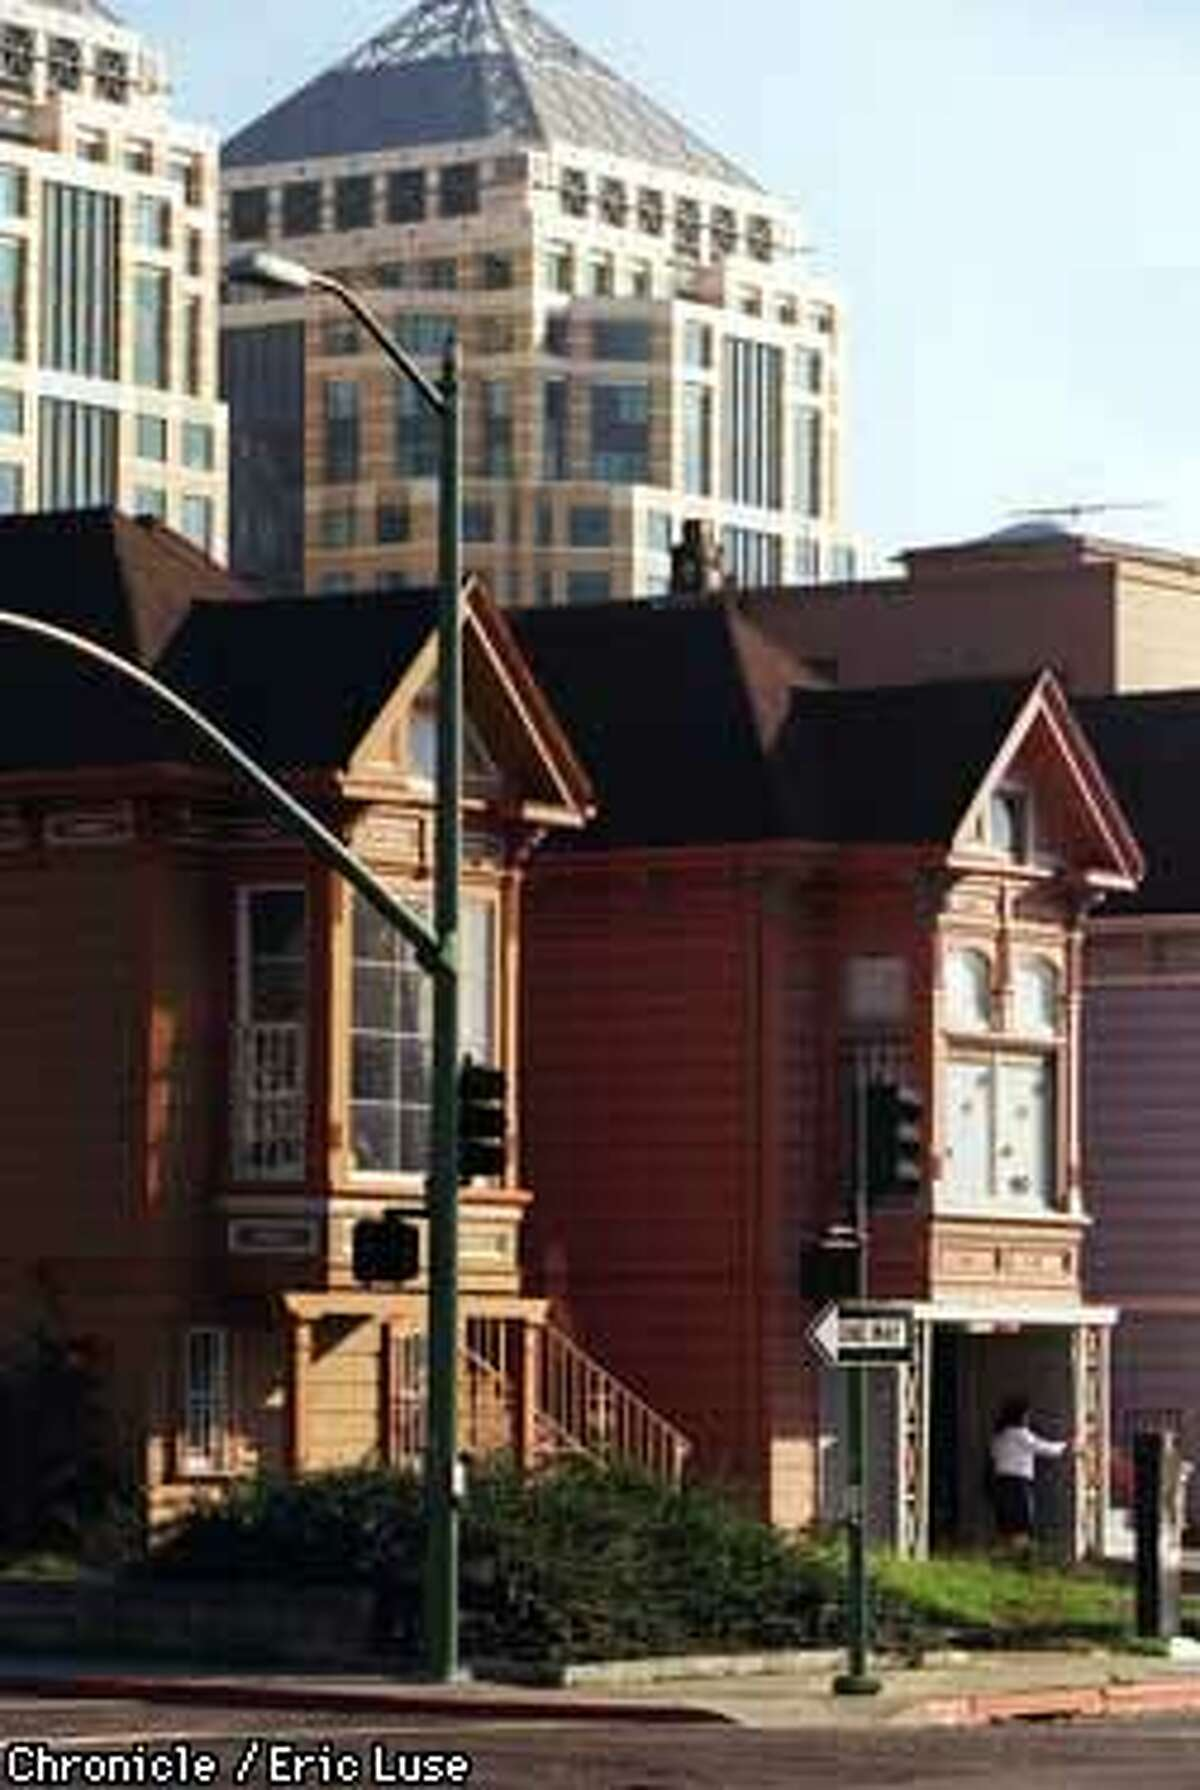 Oakland's row of haunted houses at 17th and Castro with downtown Oakland in the backgorund. Photo by Eric Luse